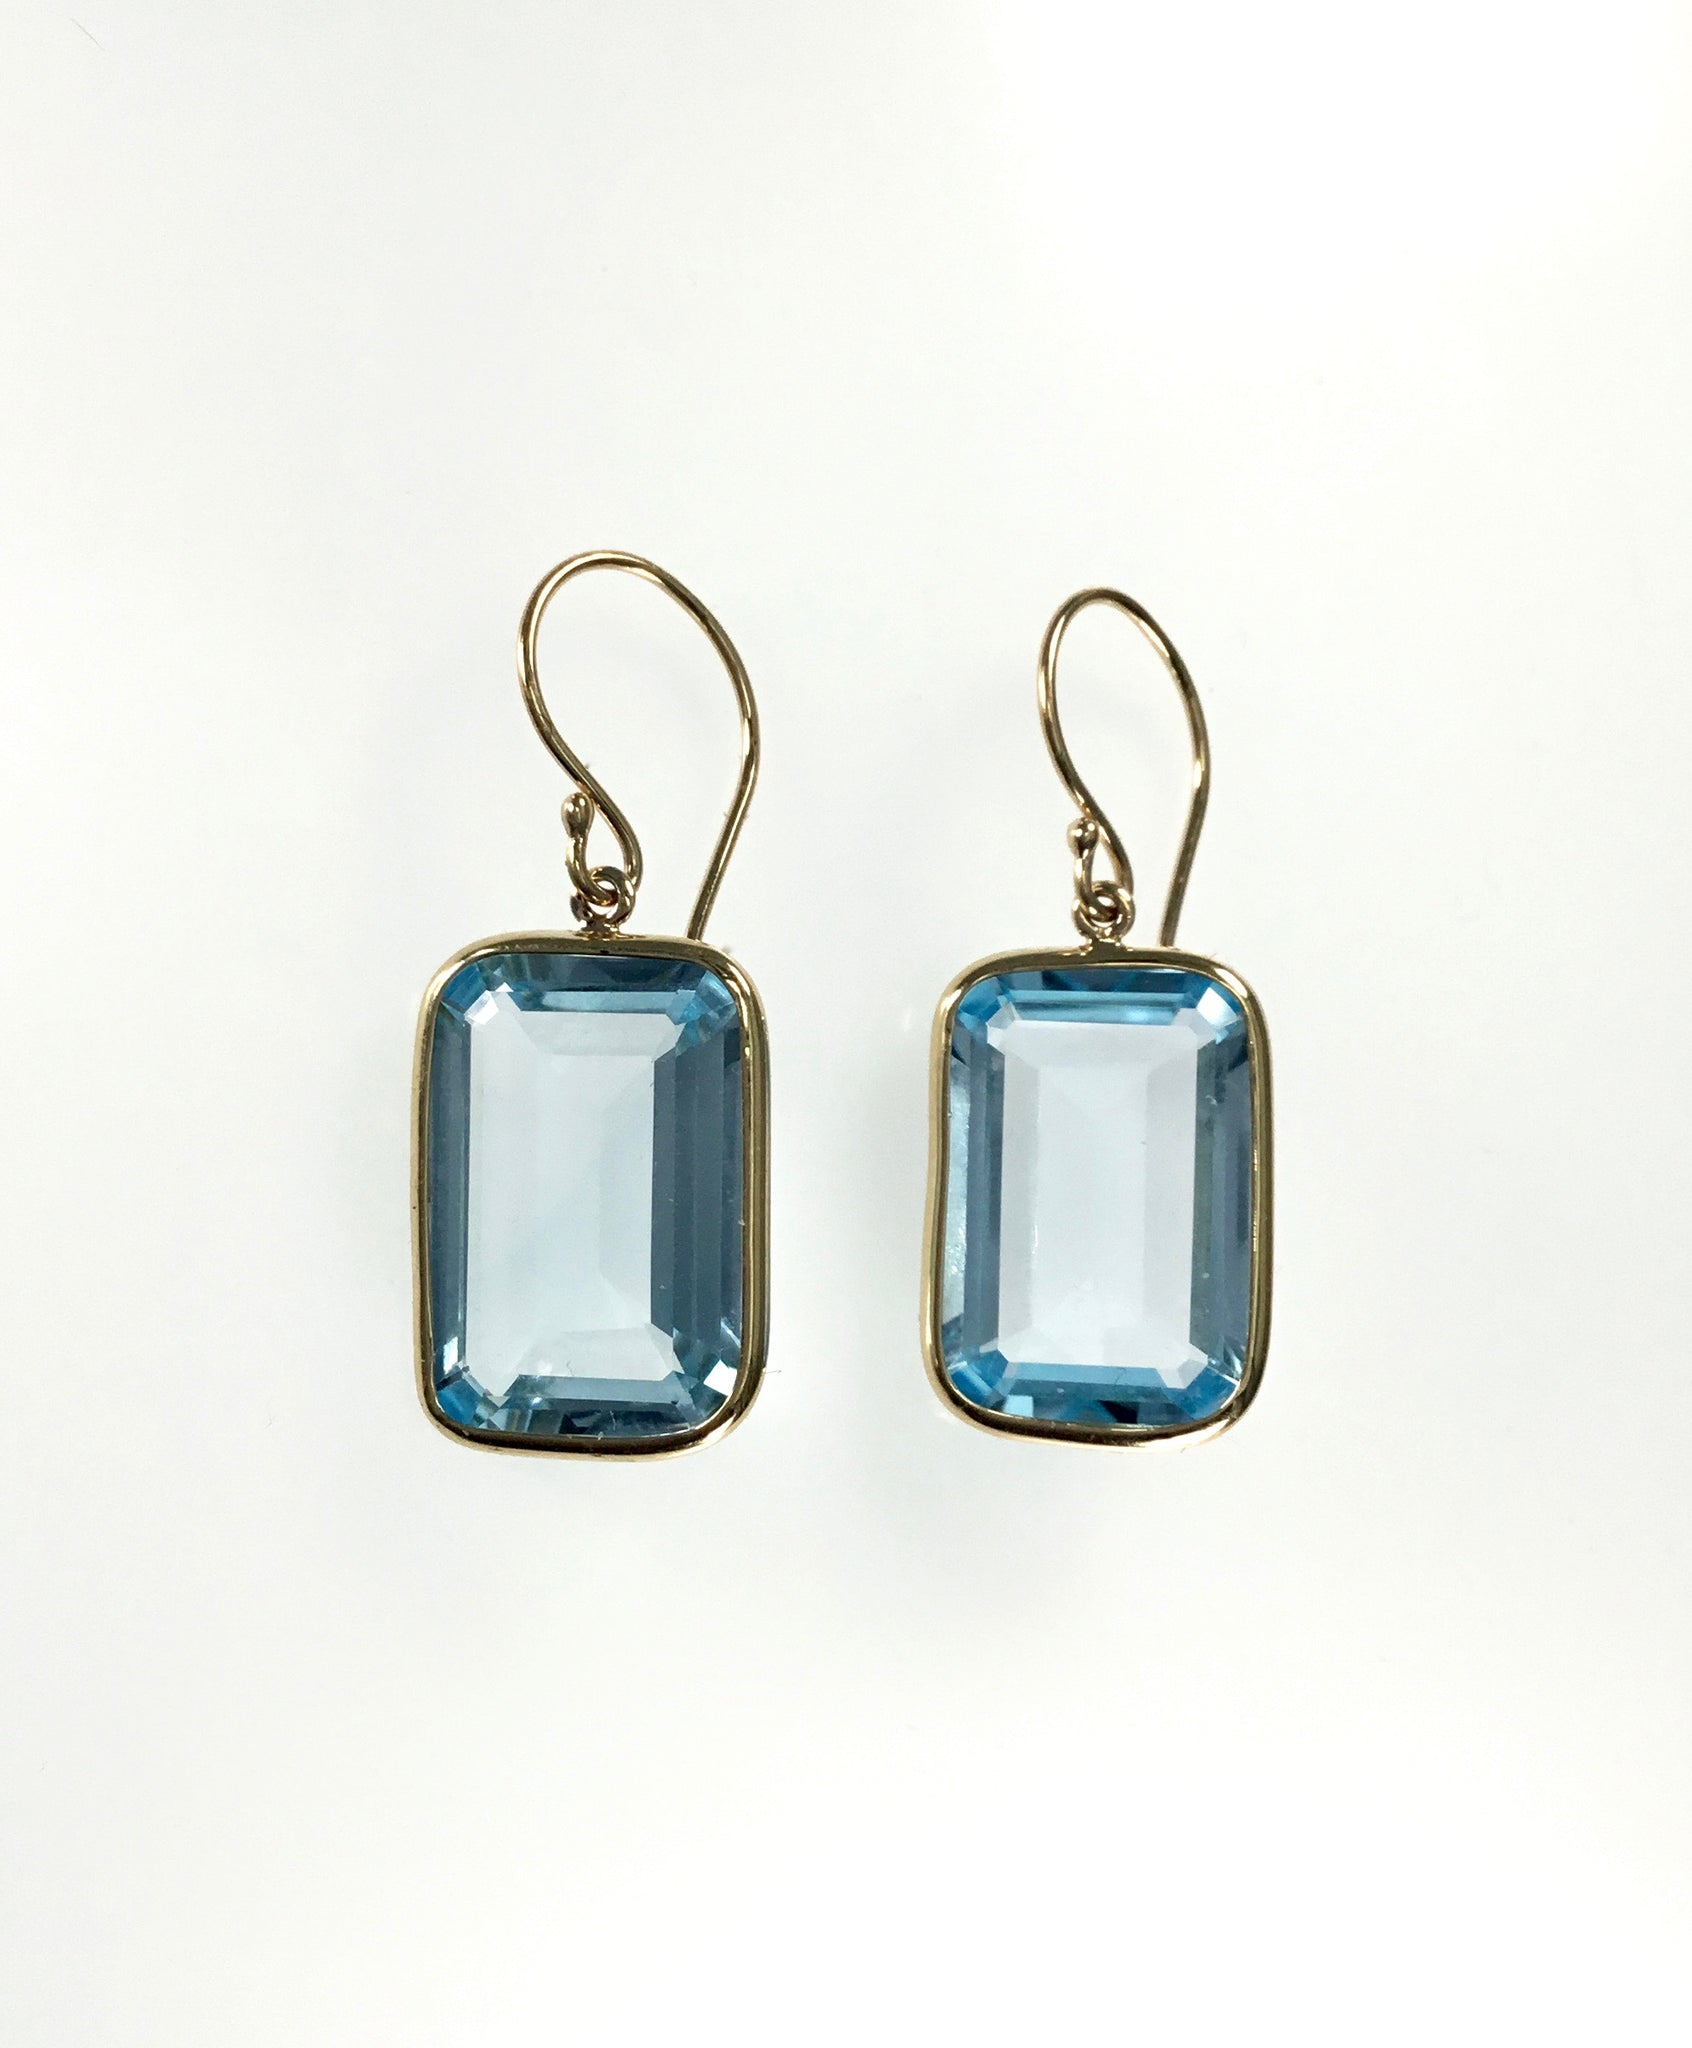 Jamie Joseph Sky Blue Topaz Earrings